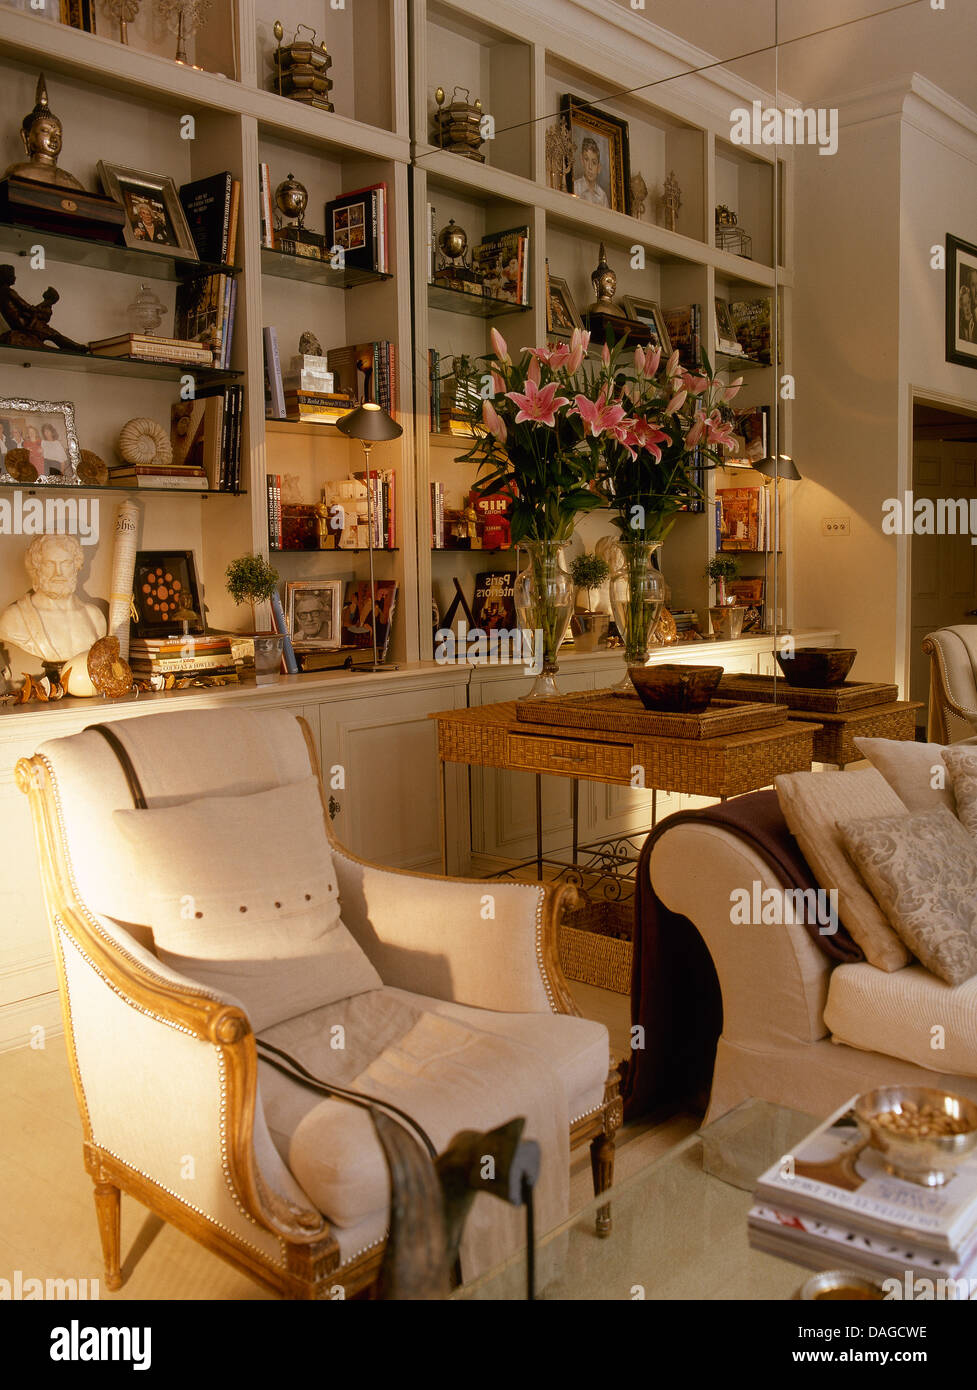 Cream Armchair And Sofa In Front Of Fitted Shelves With Lighted Spotlights Apartment Living Room